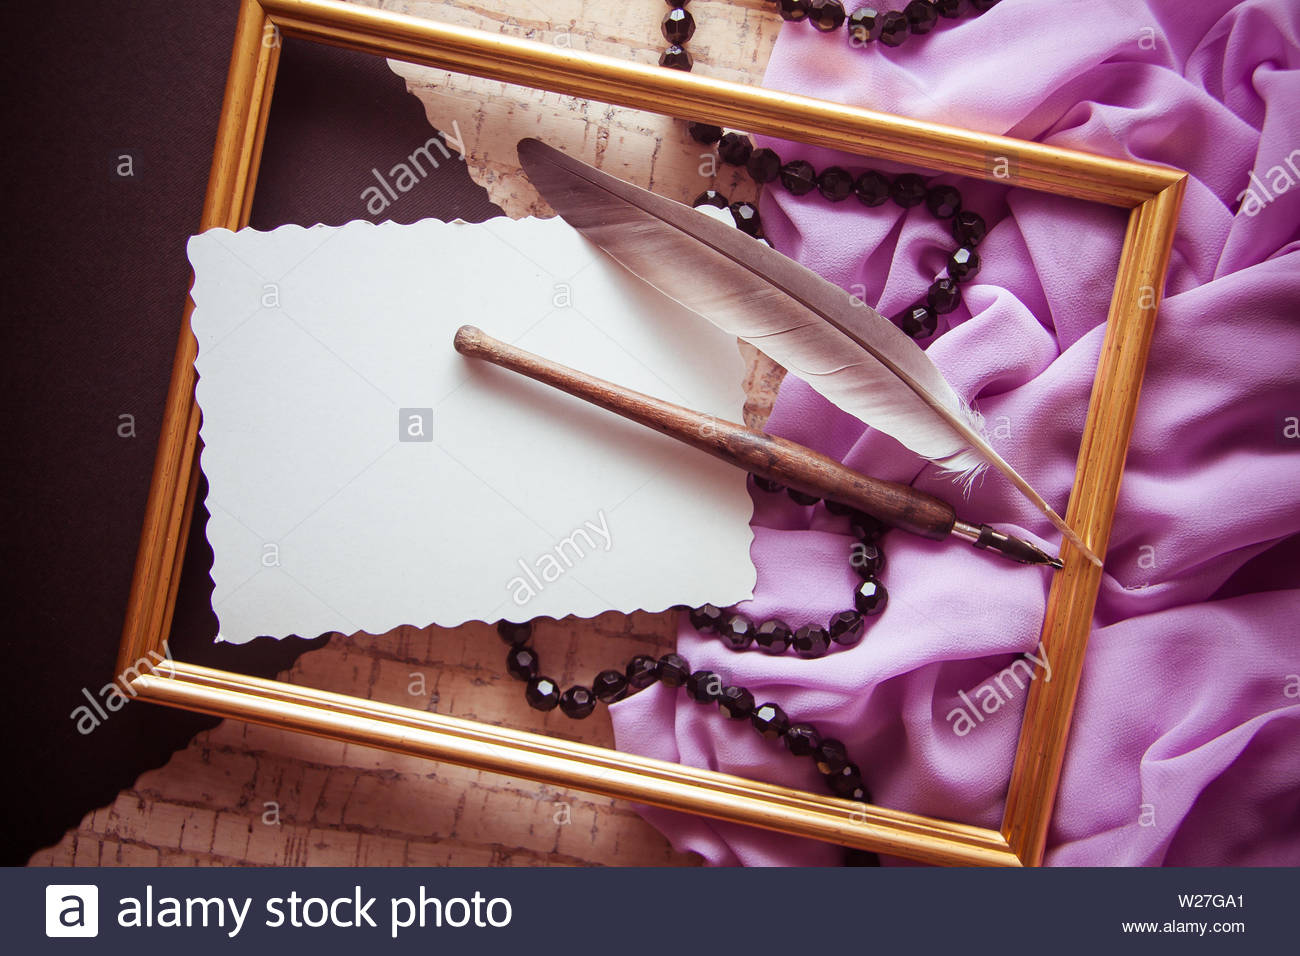 positive artistic background for design and illusrating, poetry & craftsmanship concept - Stock Image